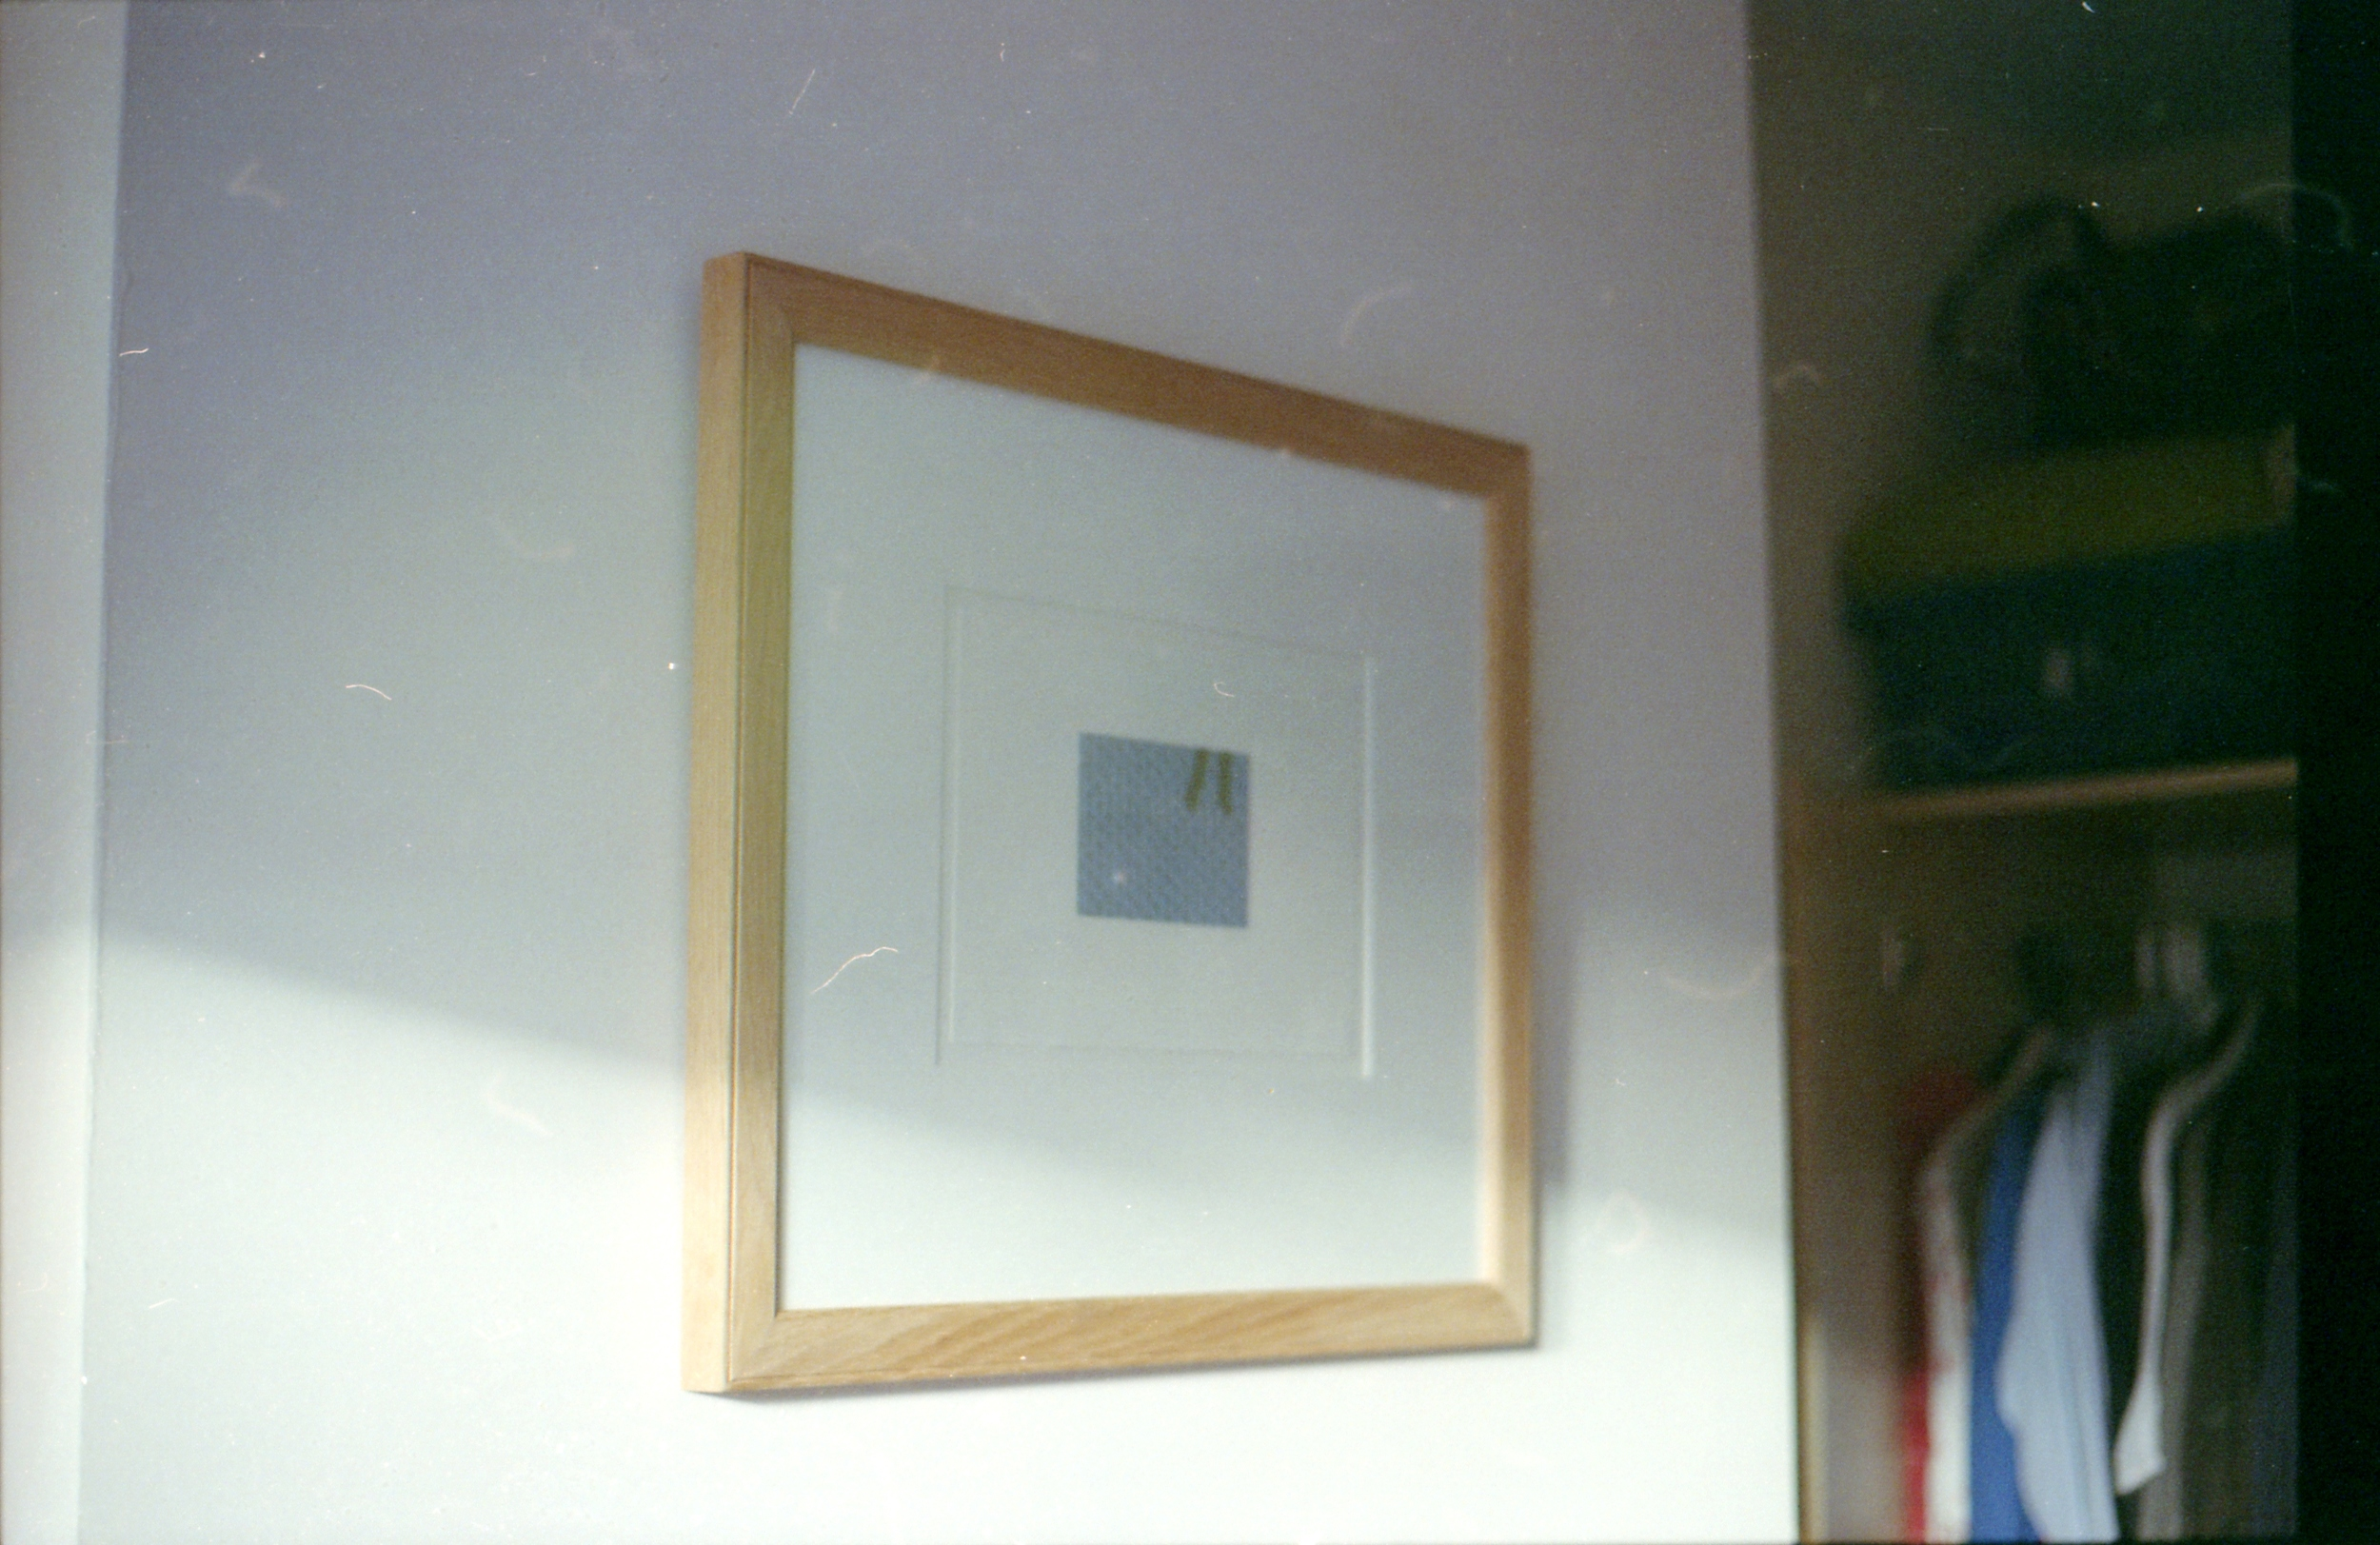 33/366 - Our latest art in our bedroom from the  Leeds Gallery Lending Scheme